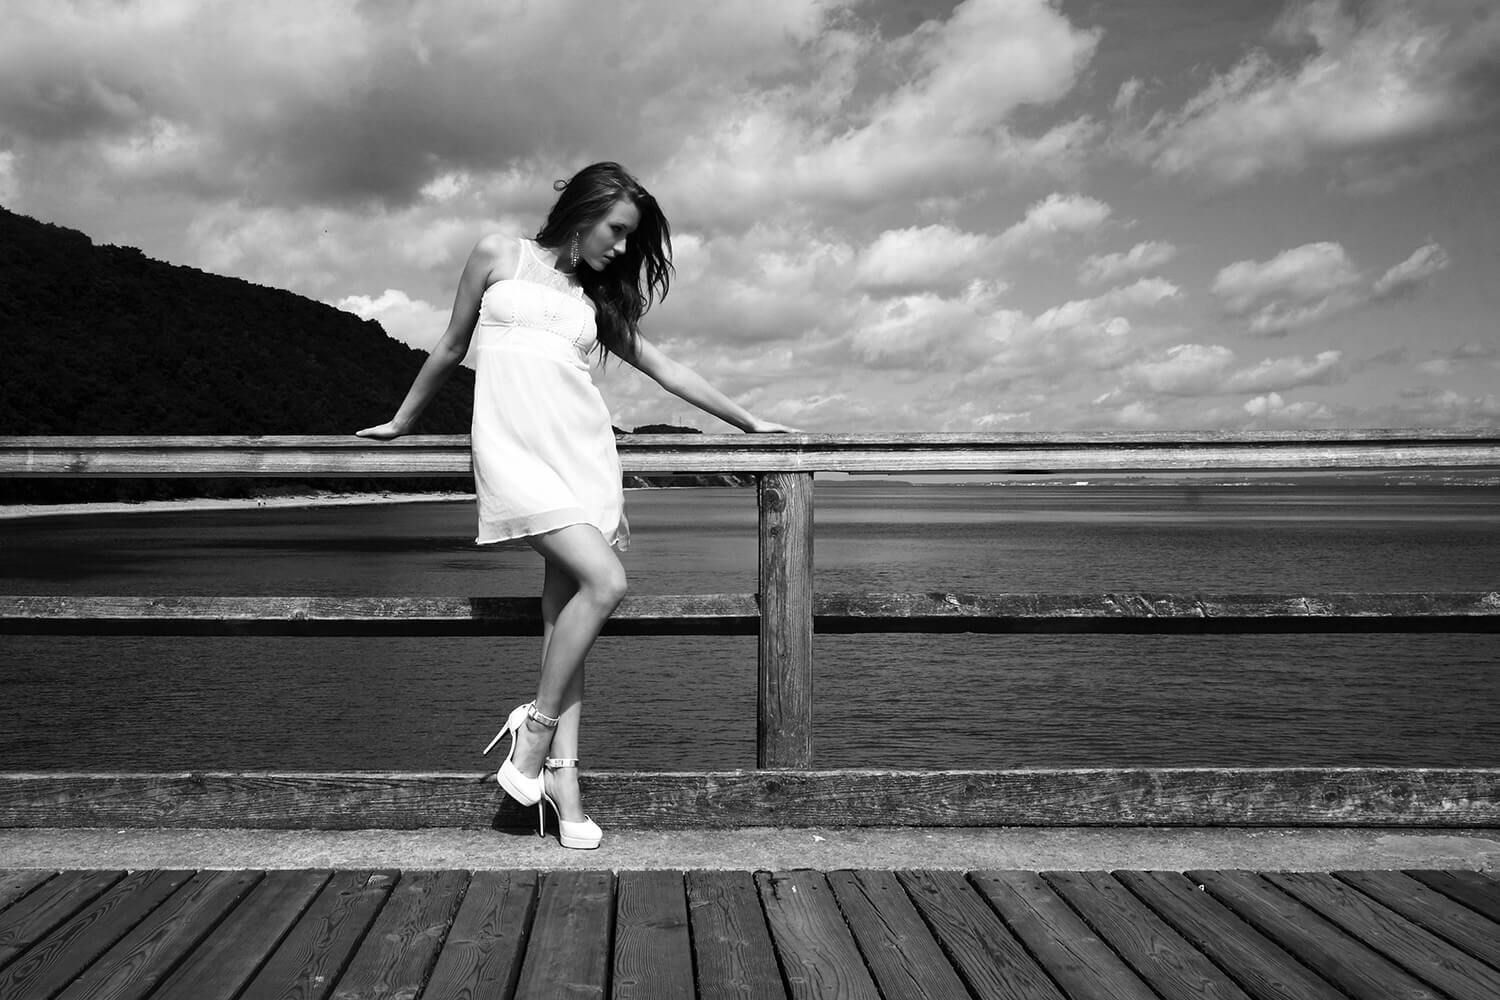 black and white fashion photo of a woman in a white dress on the pier